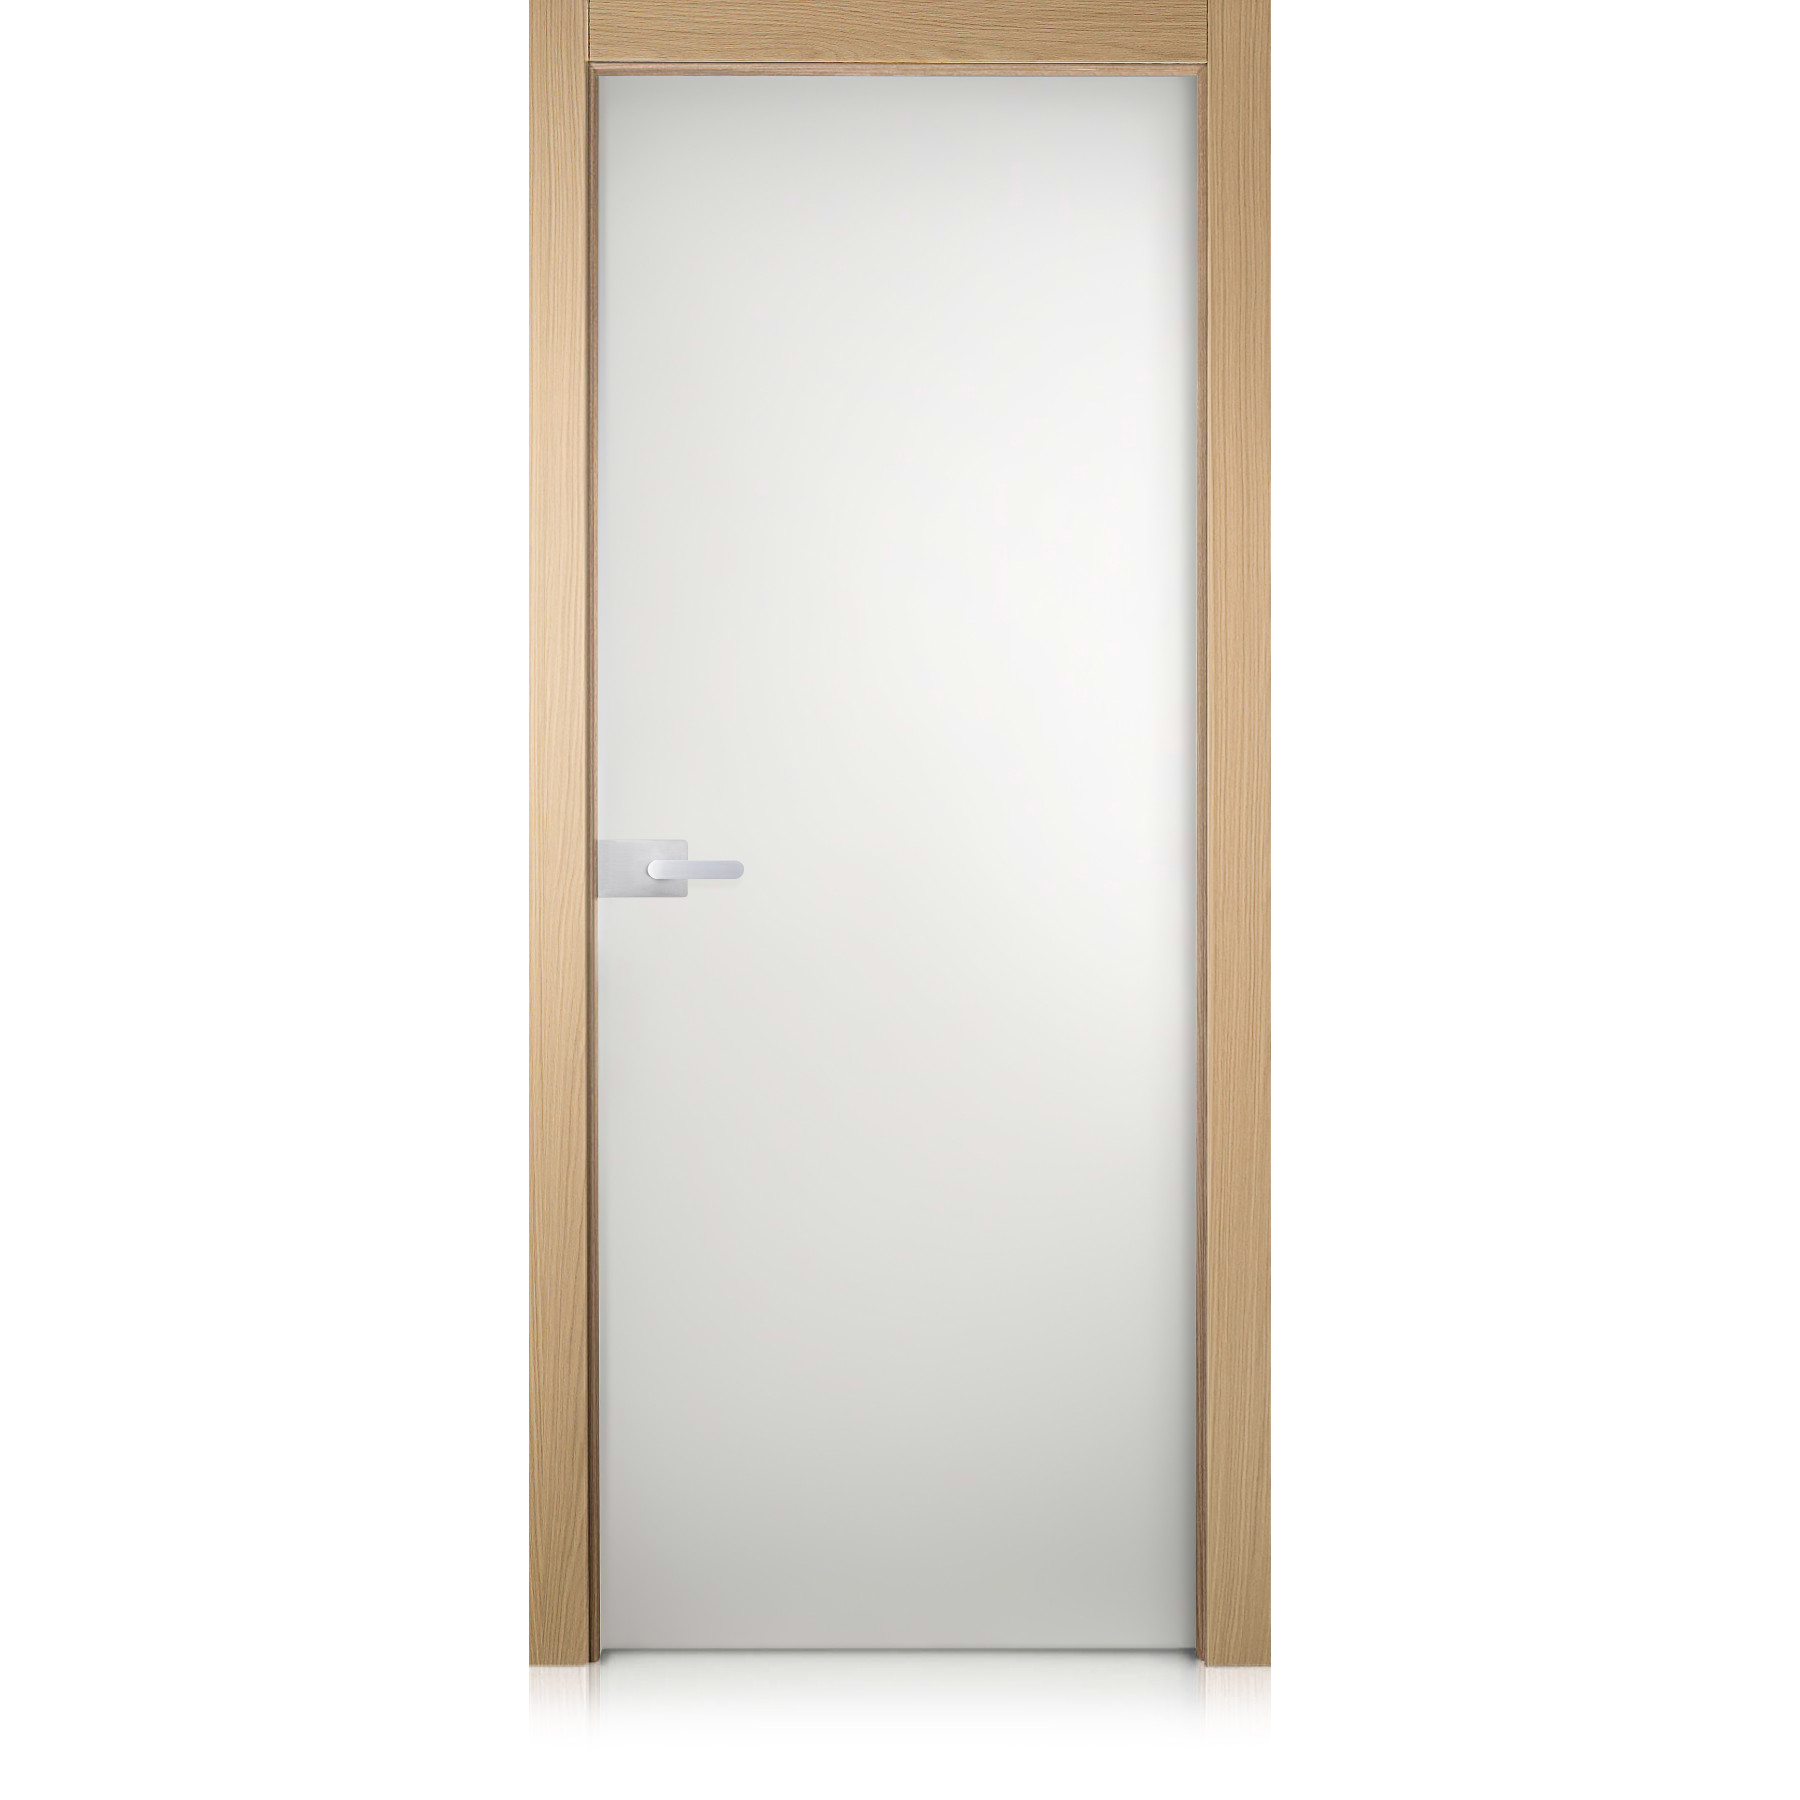 Cristal Basic rovere natural touch door